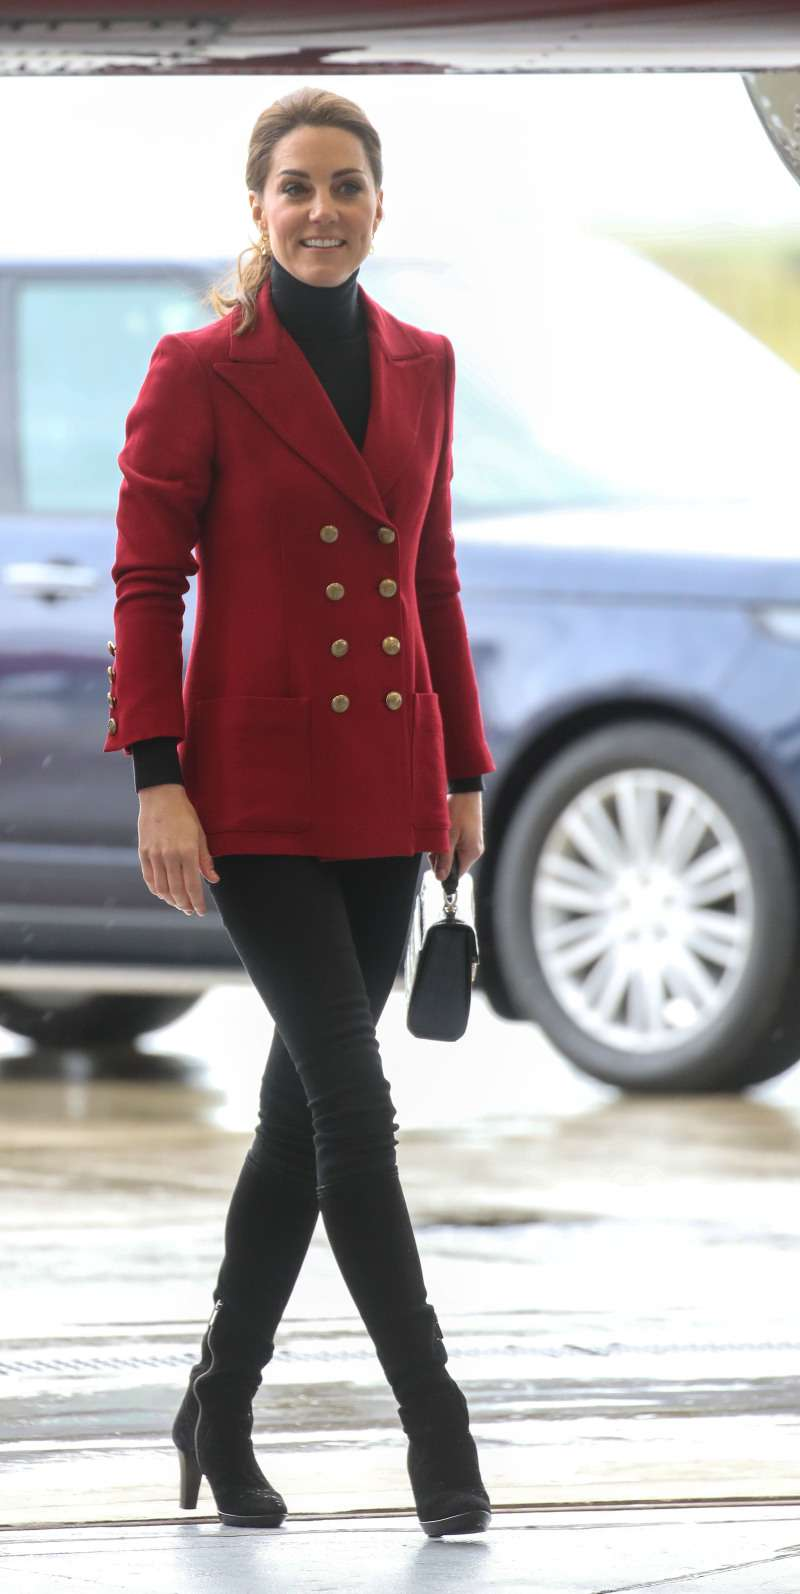 Duchess Of Cambridge Wears Shoes Of Different Sizes. Why Does She Do That?